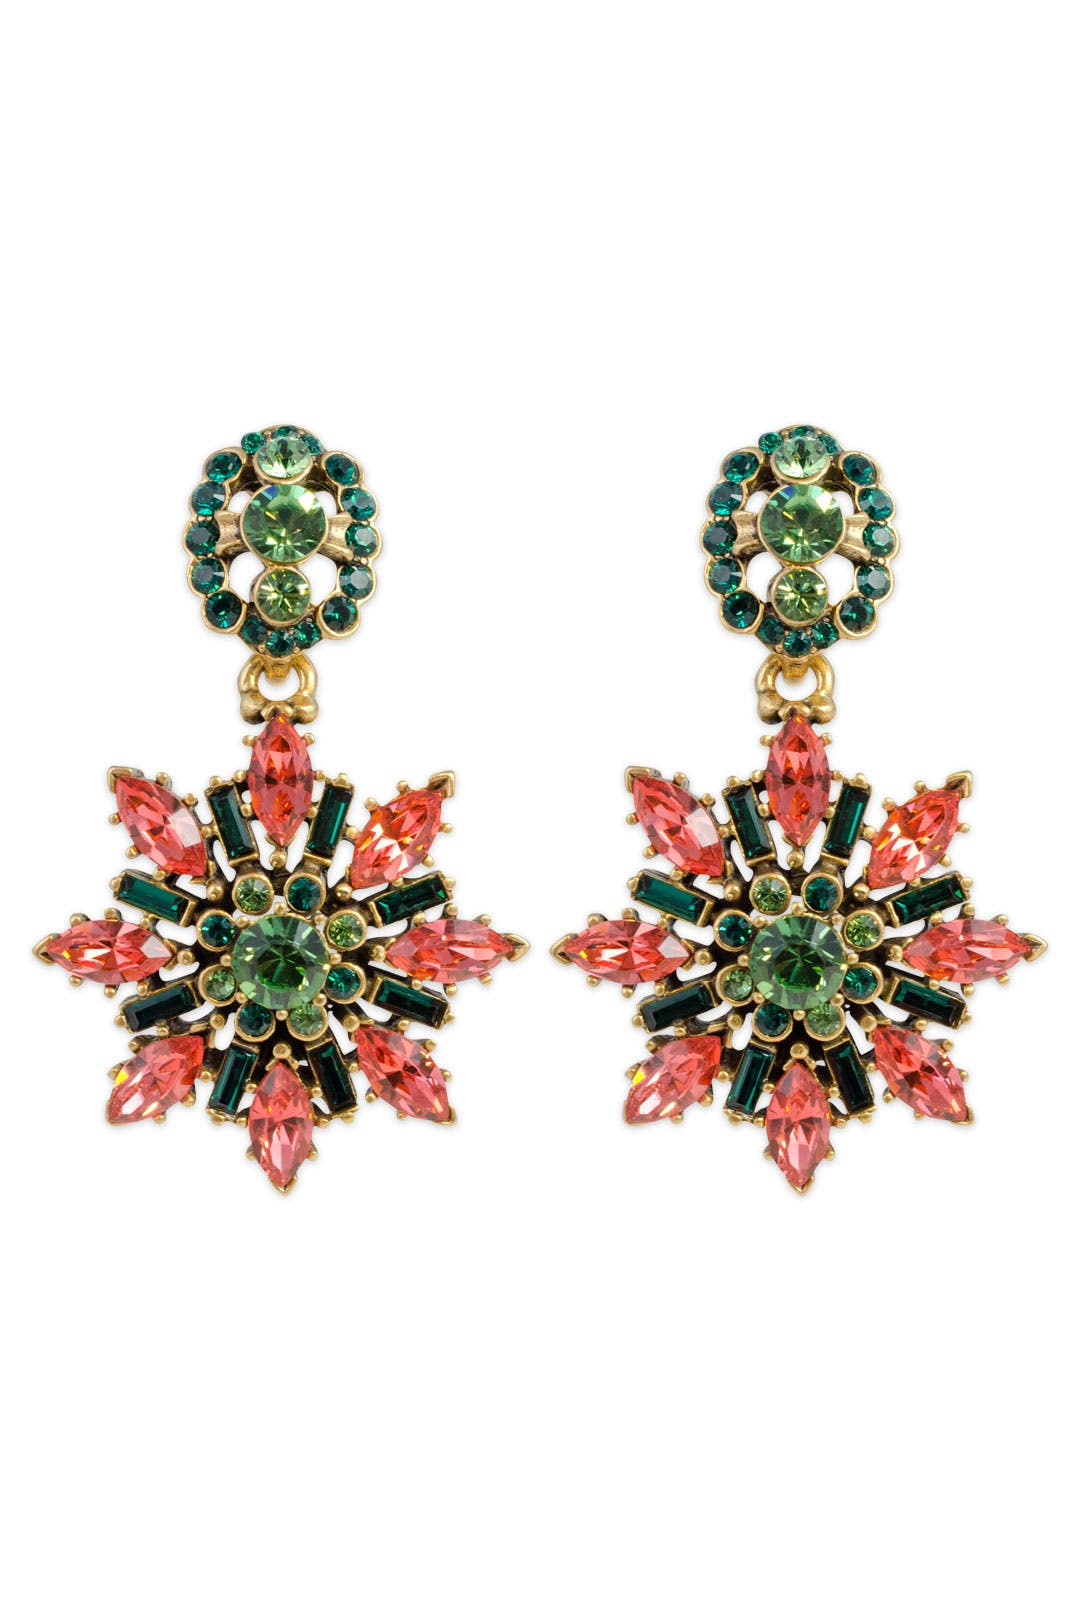 Prismatic Etoile Earrings by Oscar de la Renta